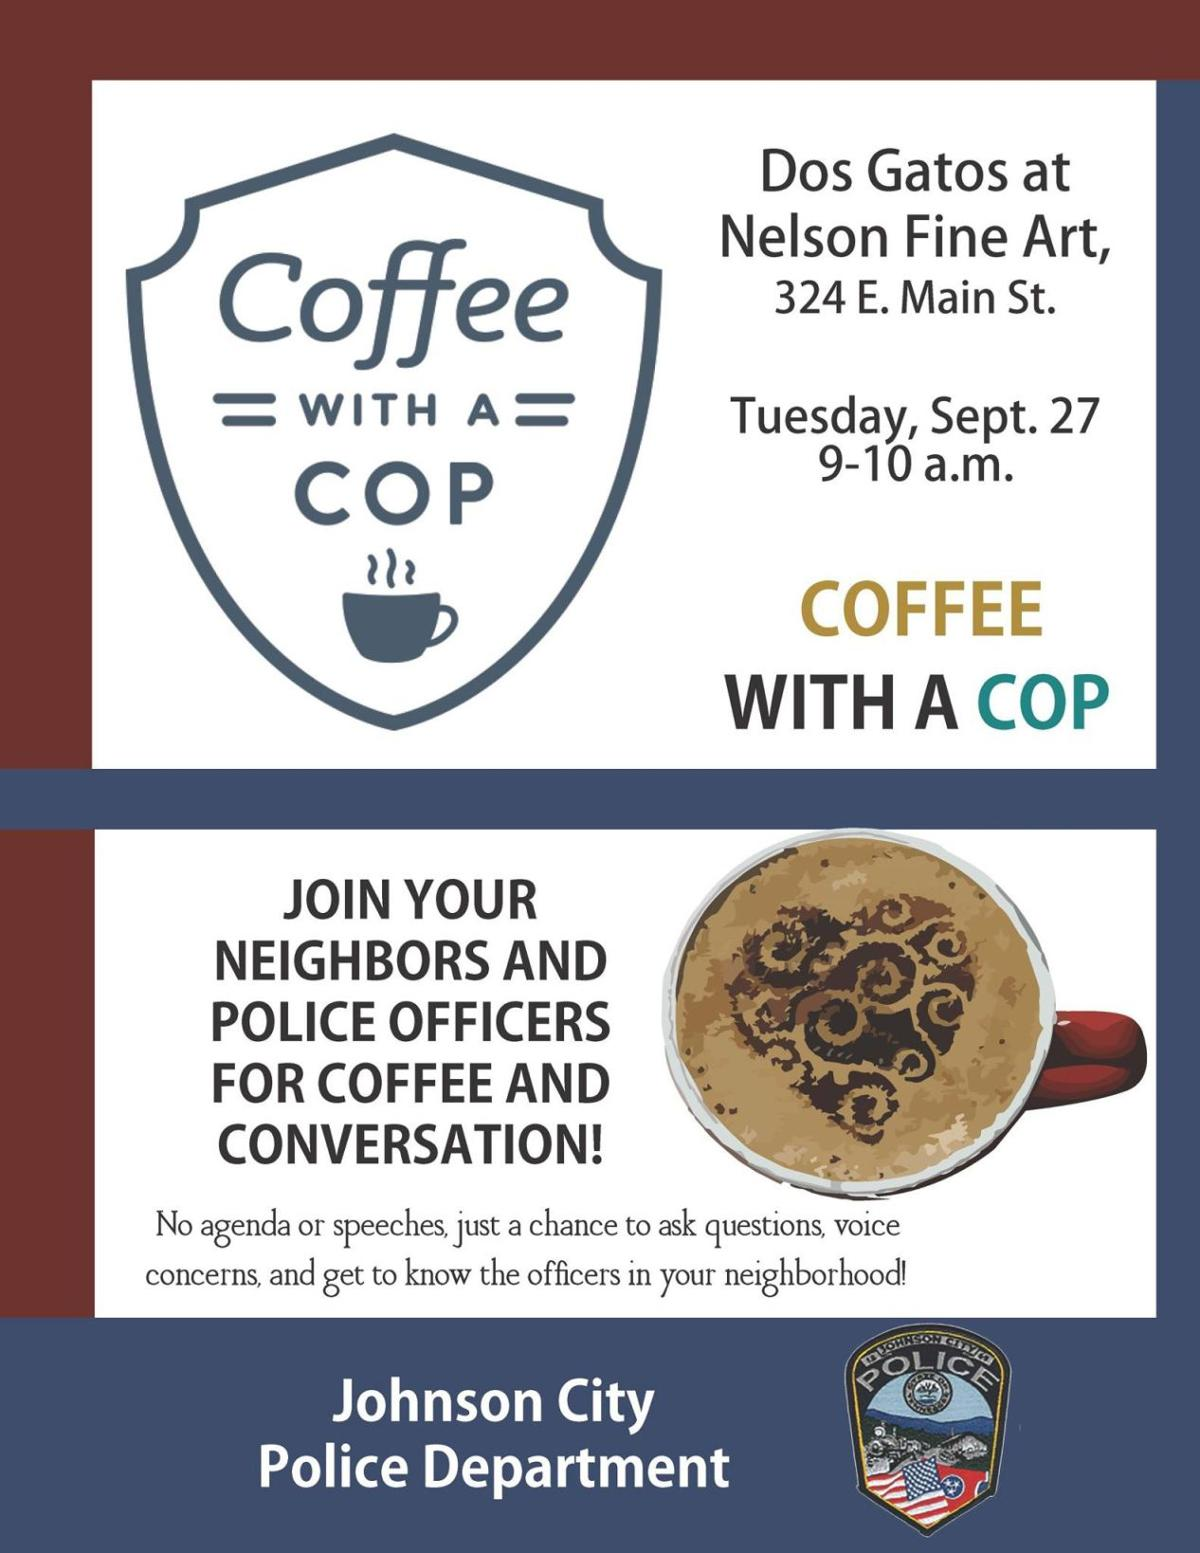 Johnson City police encourage interaction during Coffee with a Cop